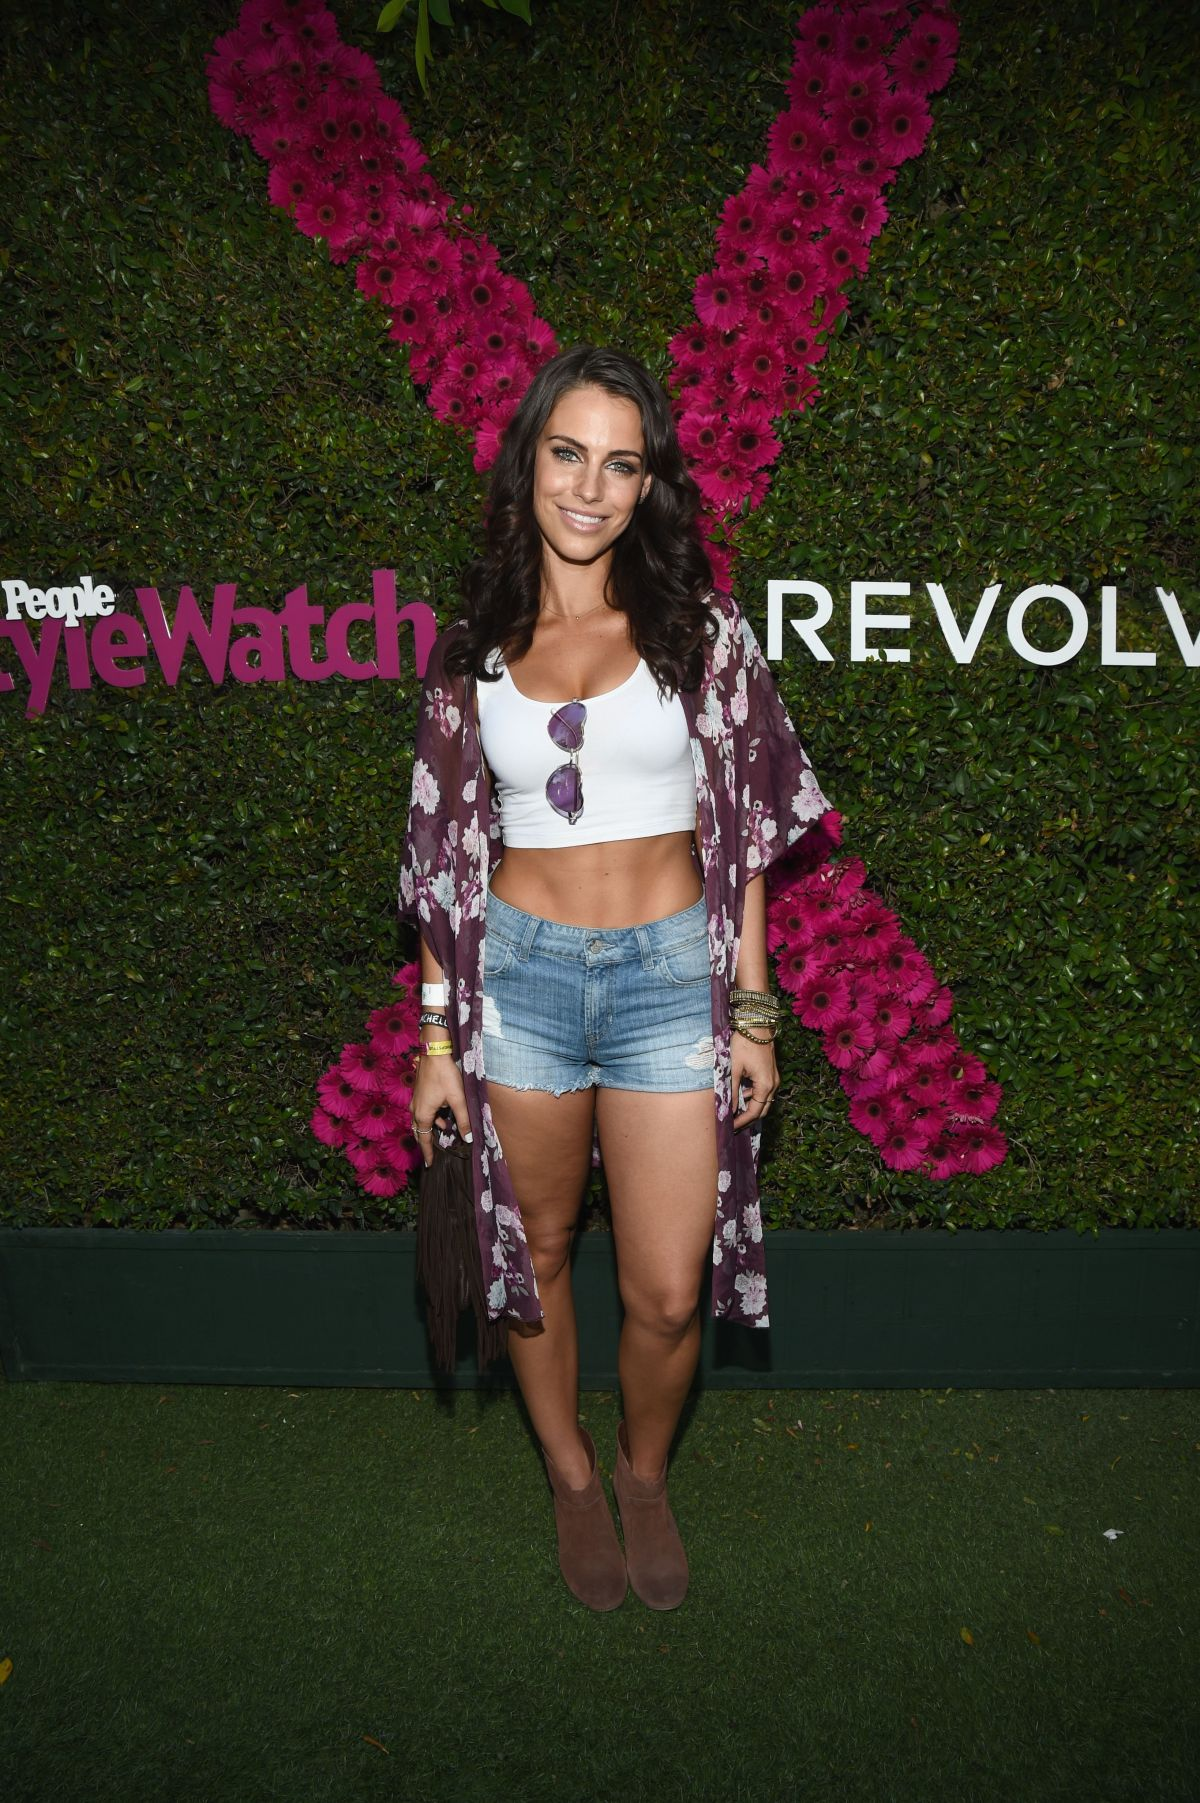 JESSICA LOWNDES at People Stylewatch & Revolve Fashion and Festival Event in Palm Springs